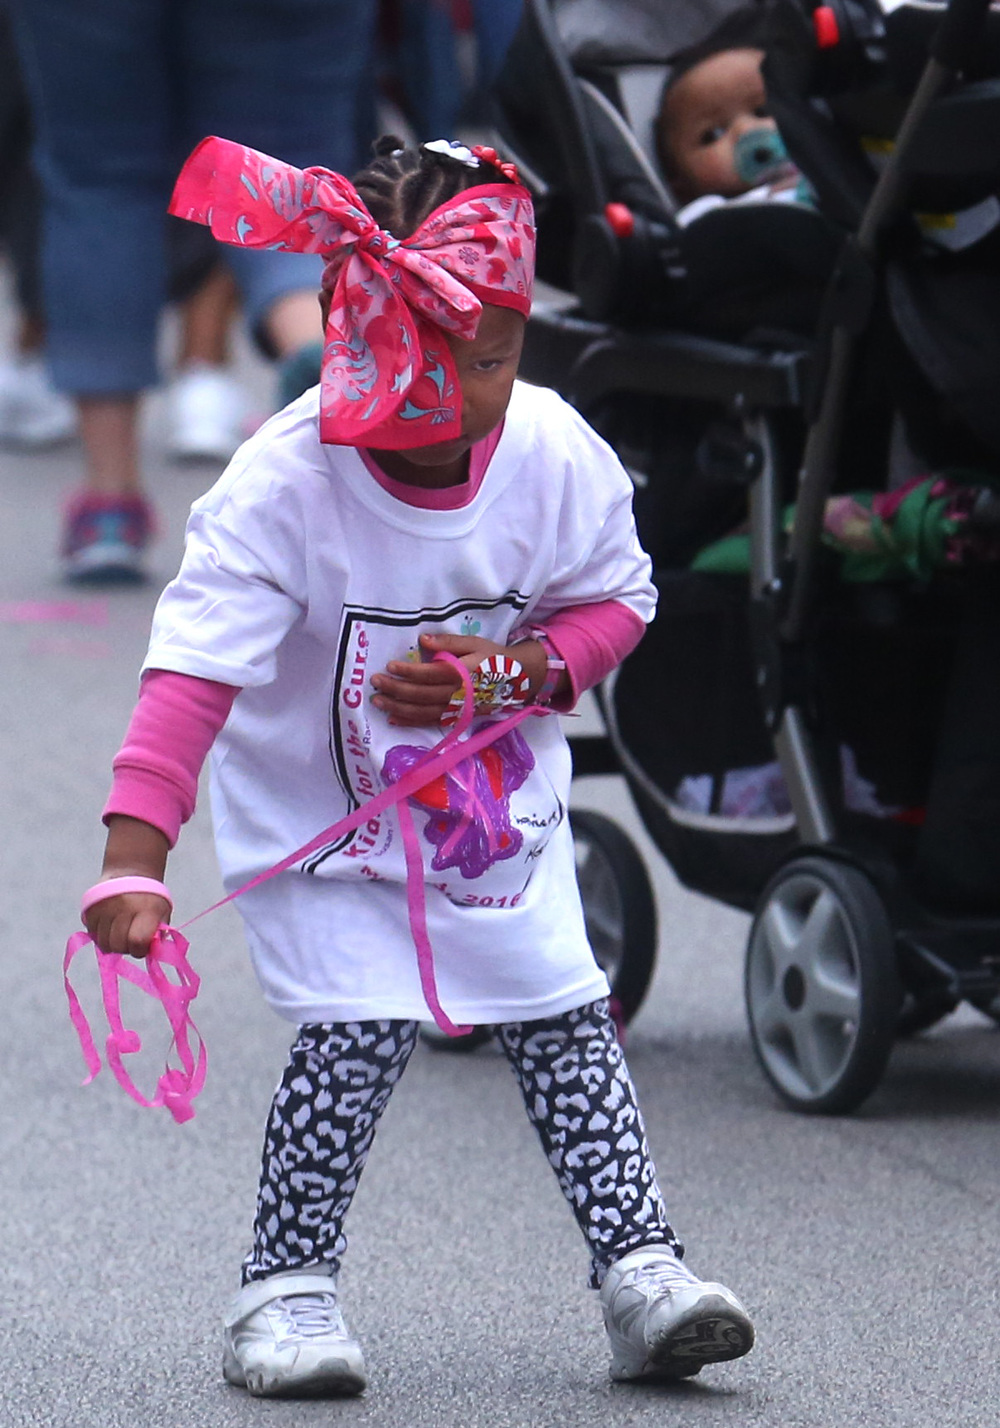 One young race participant coulden't resist collecting some of the pink streamers that ended up on the race course Friday night. David Spencer/The State Journal-Register